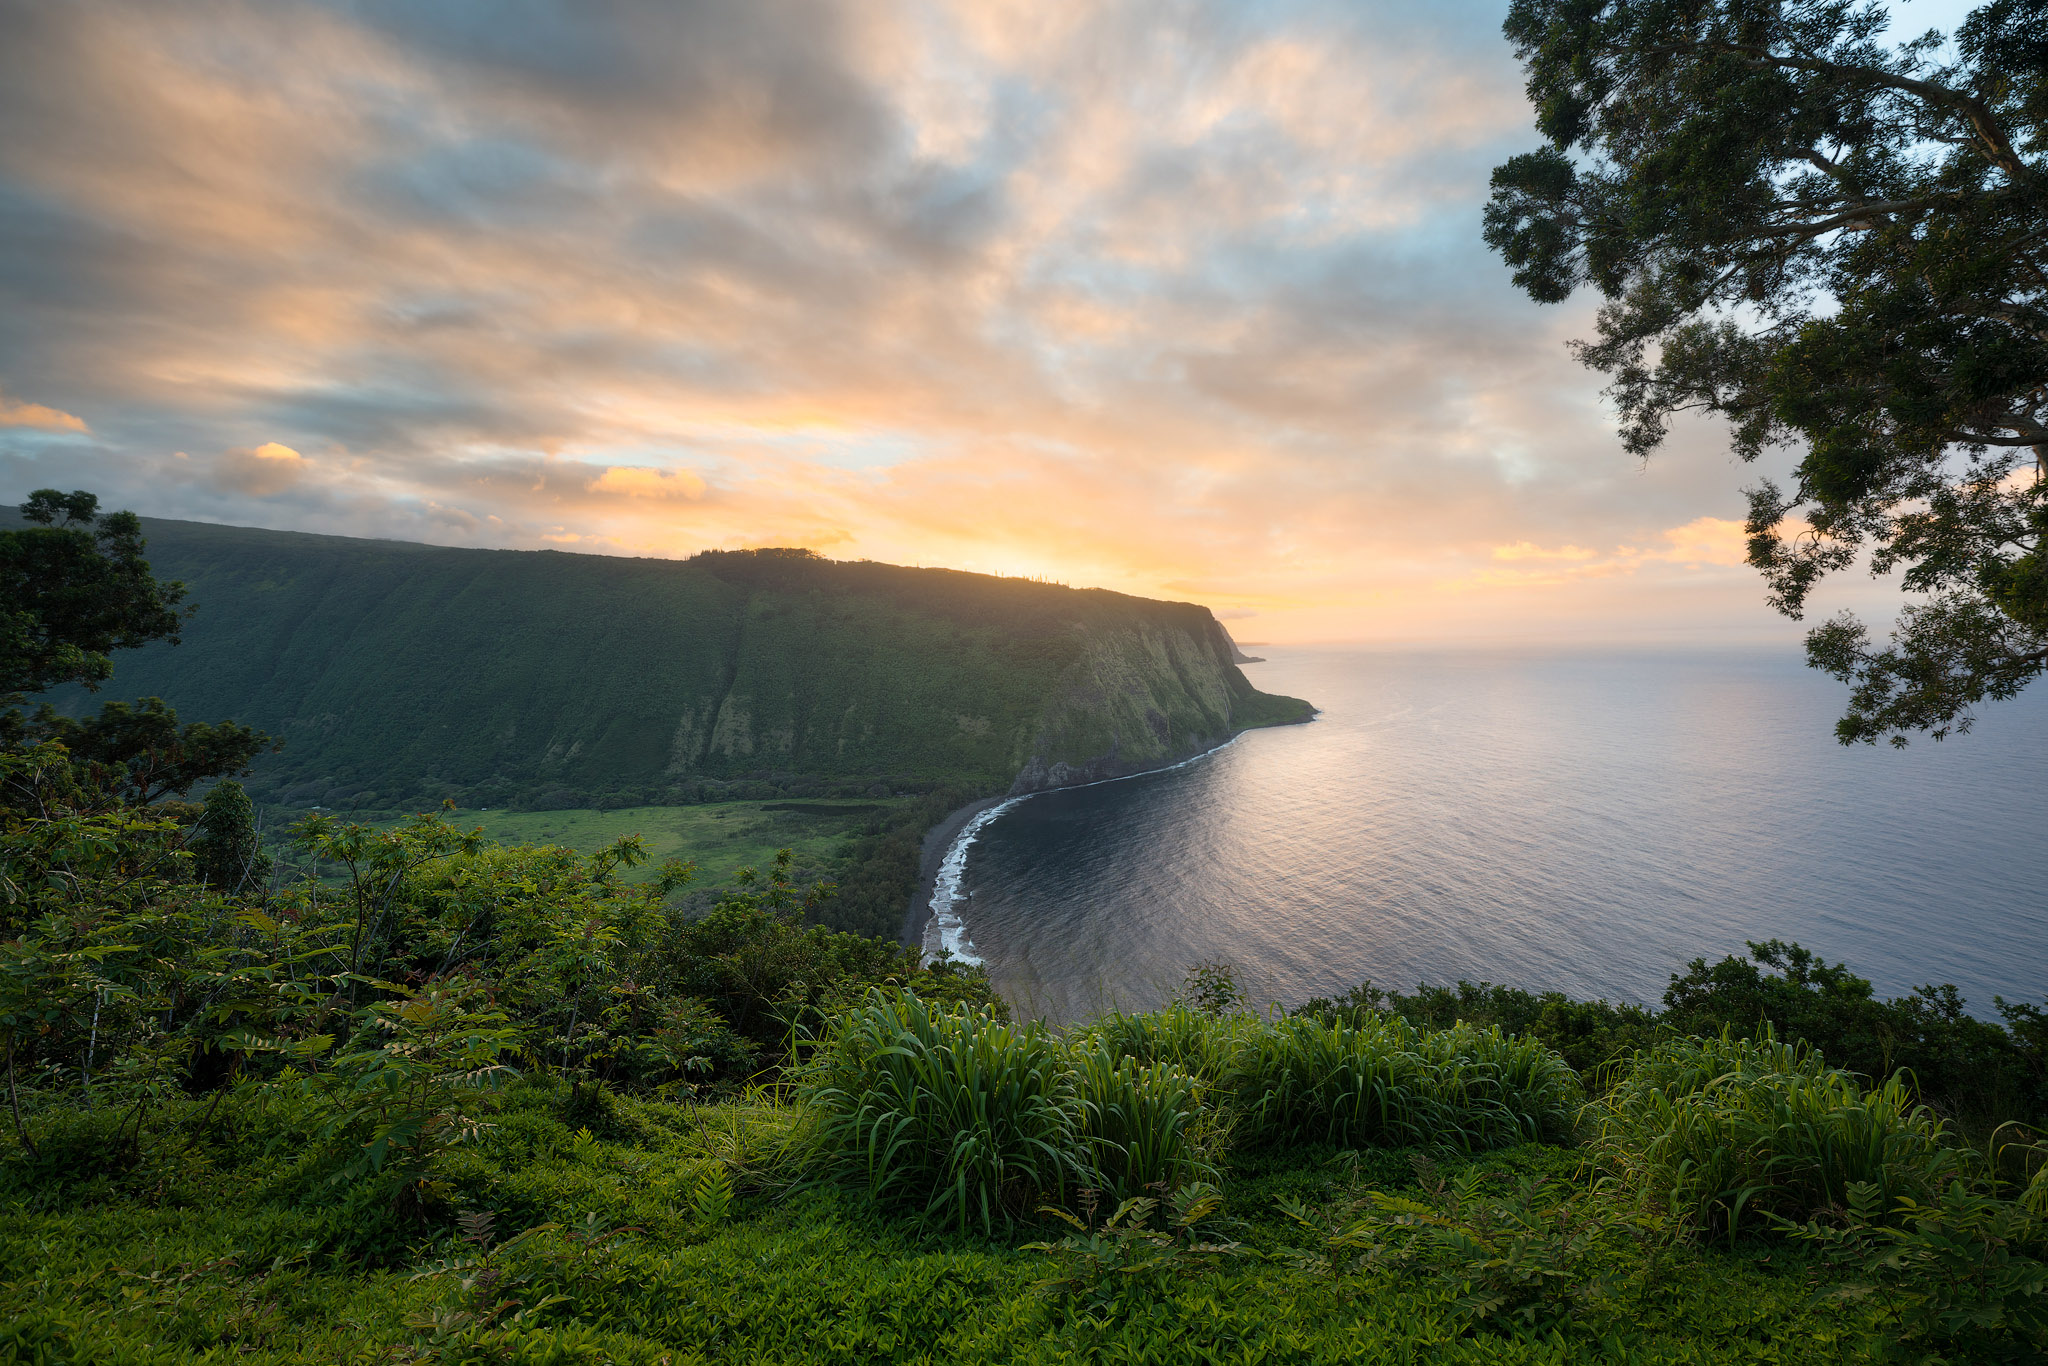 In this photo of Waipiʻo Valley a colorful sunset fills the sky over the Hamakua coastline.Waipiʻo Valley is a sacred place...